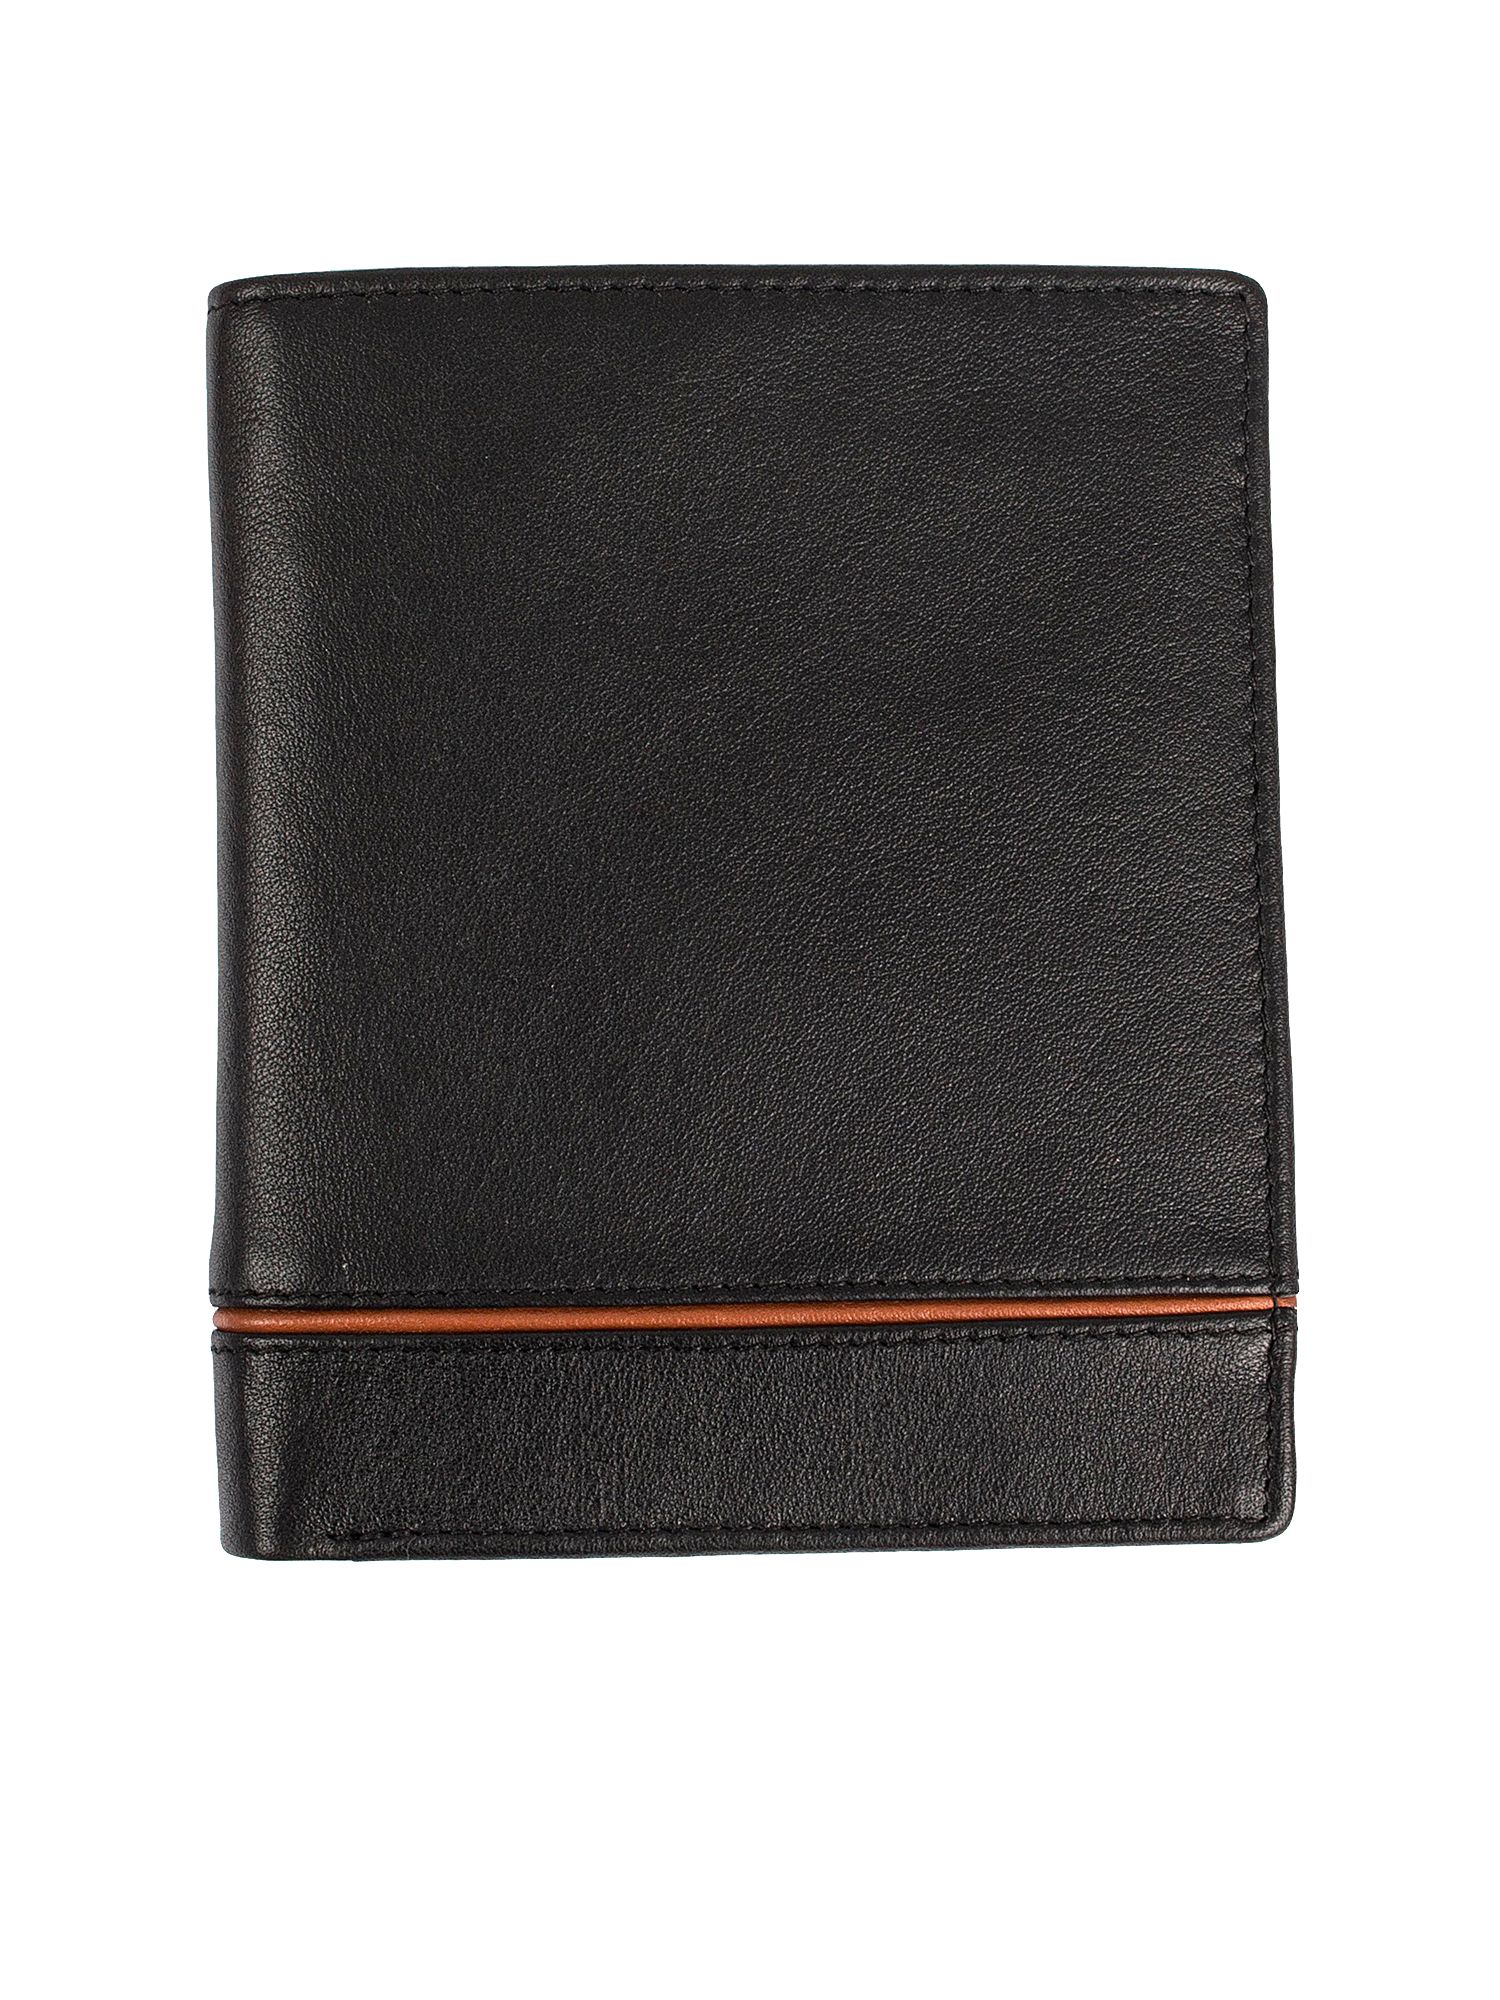 Dents Mens leather RFID protection wallet, Black